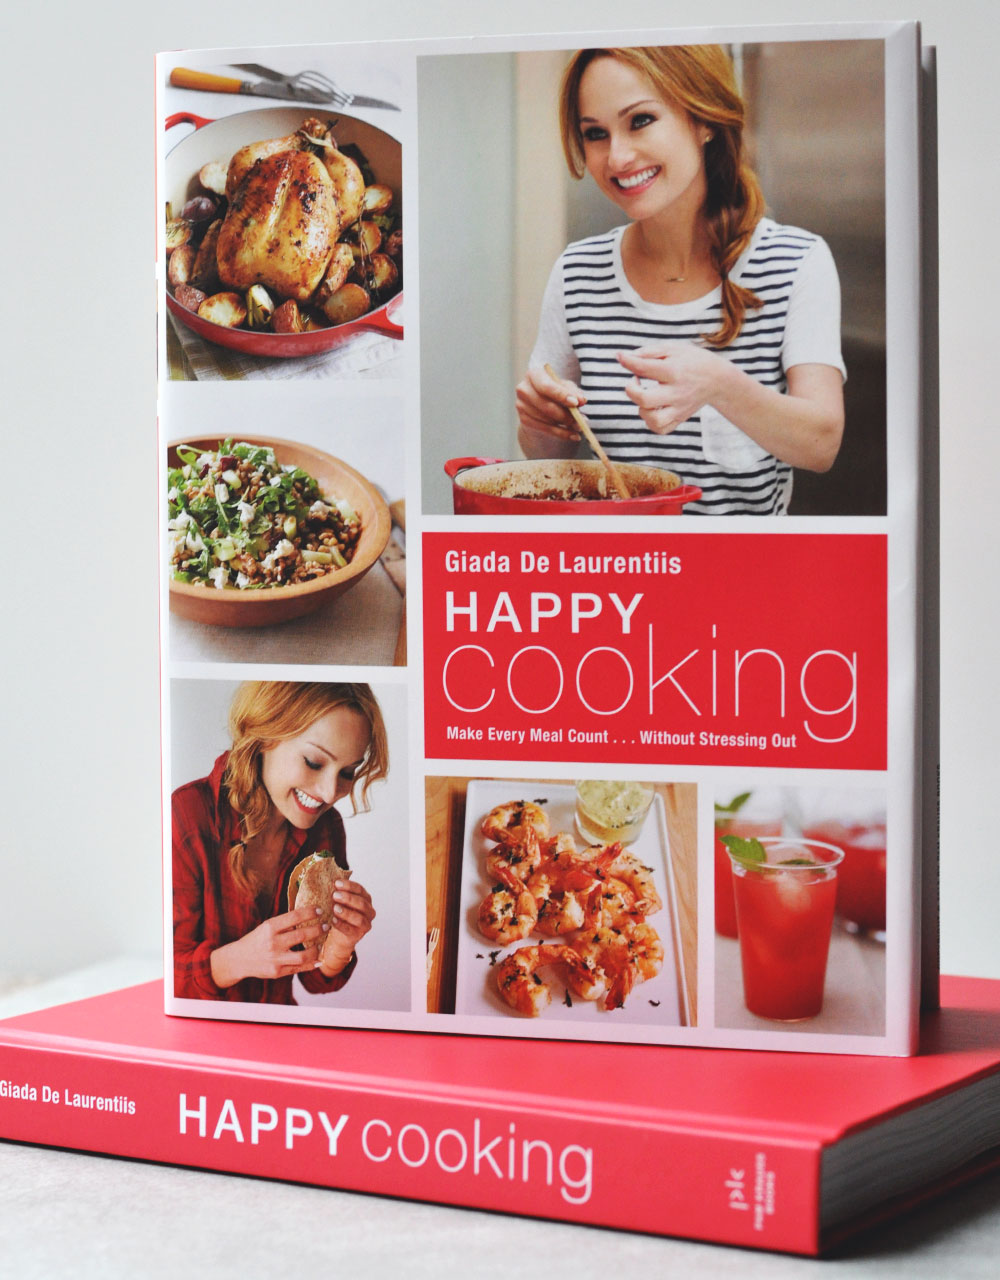 Happy Cooking by Giada De Laurentiis | Cookbook Review | www.borncreativeblog.com